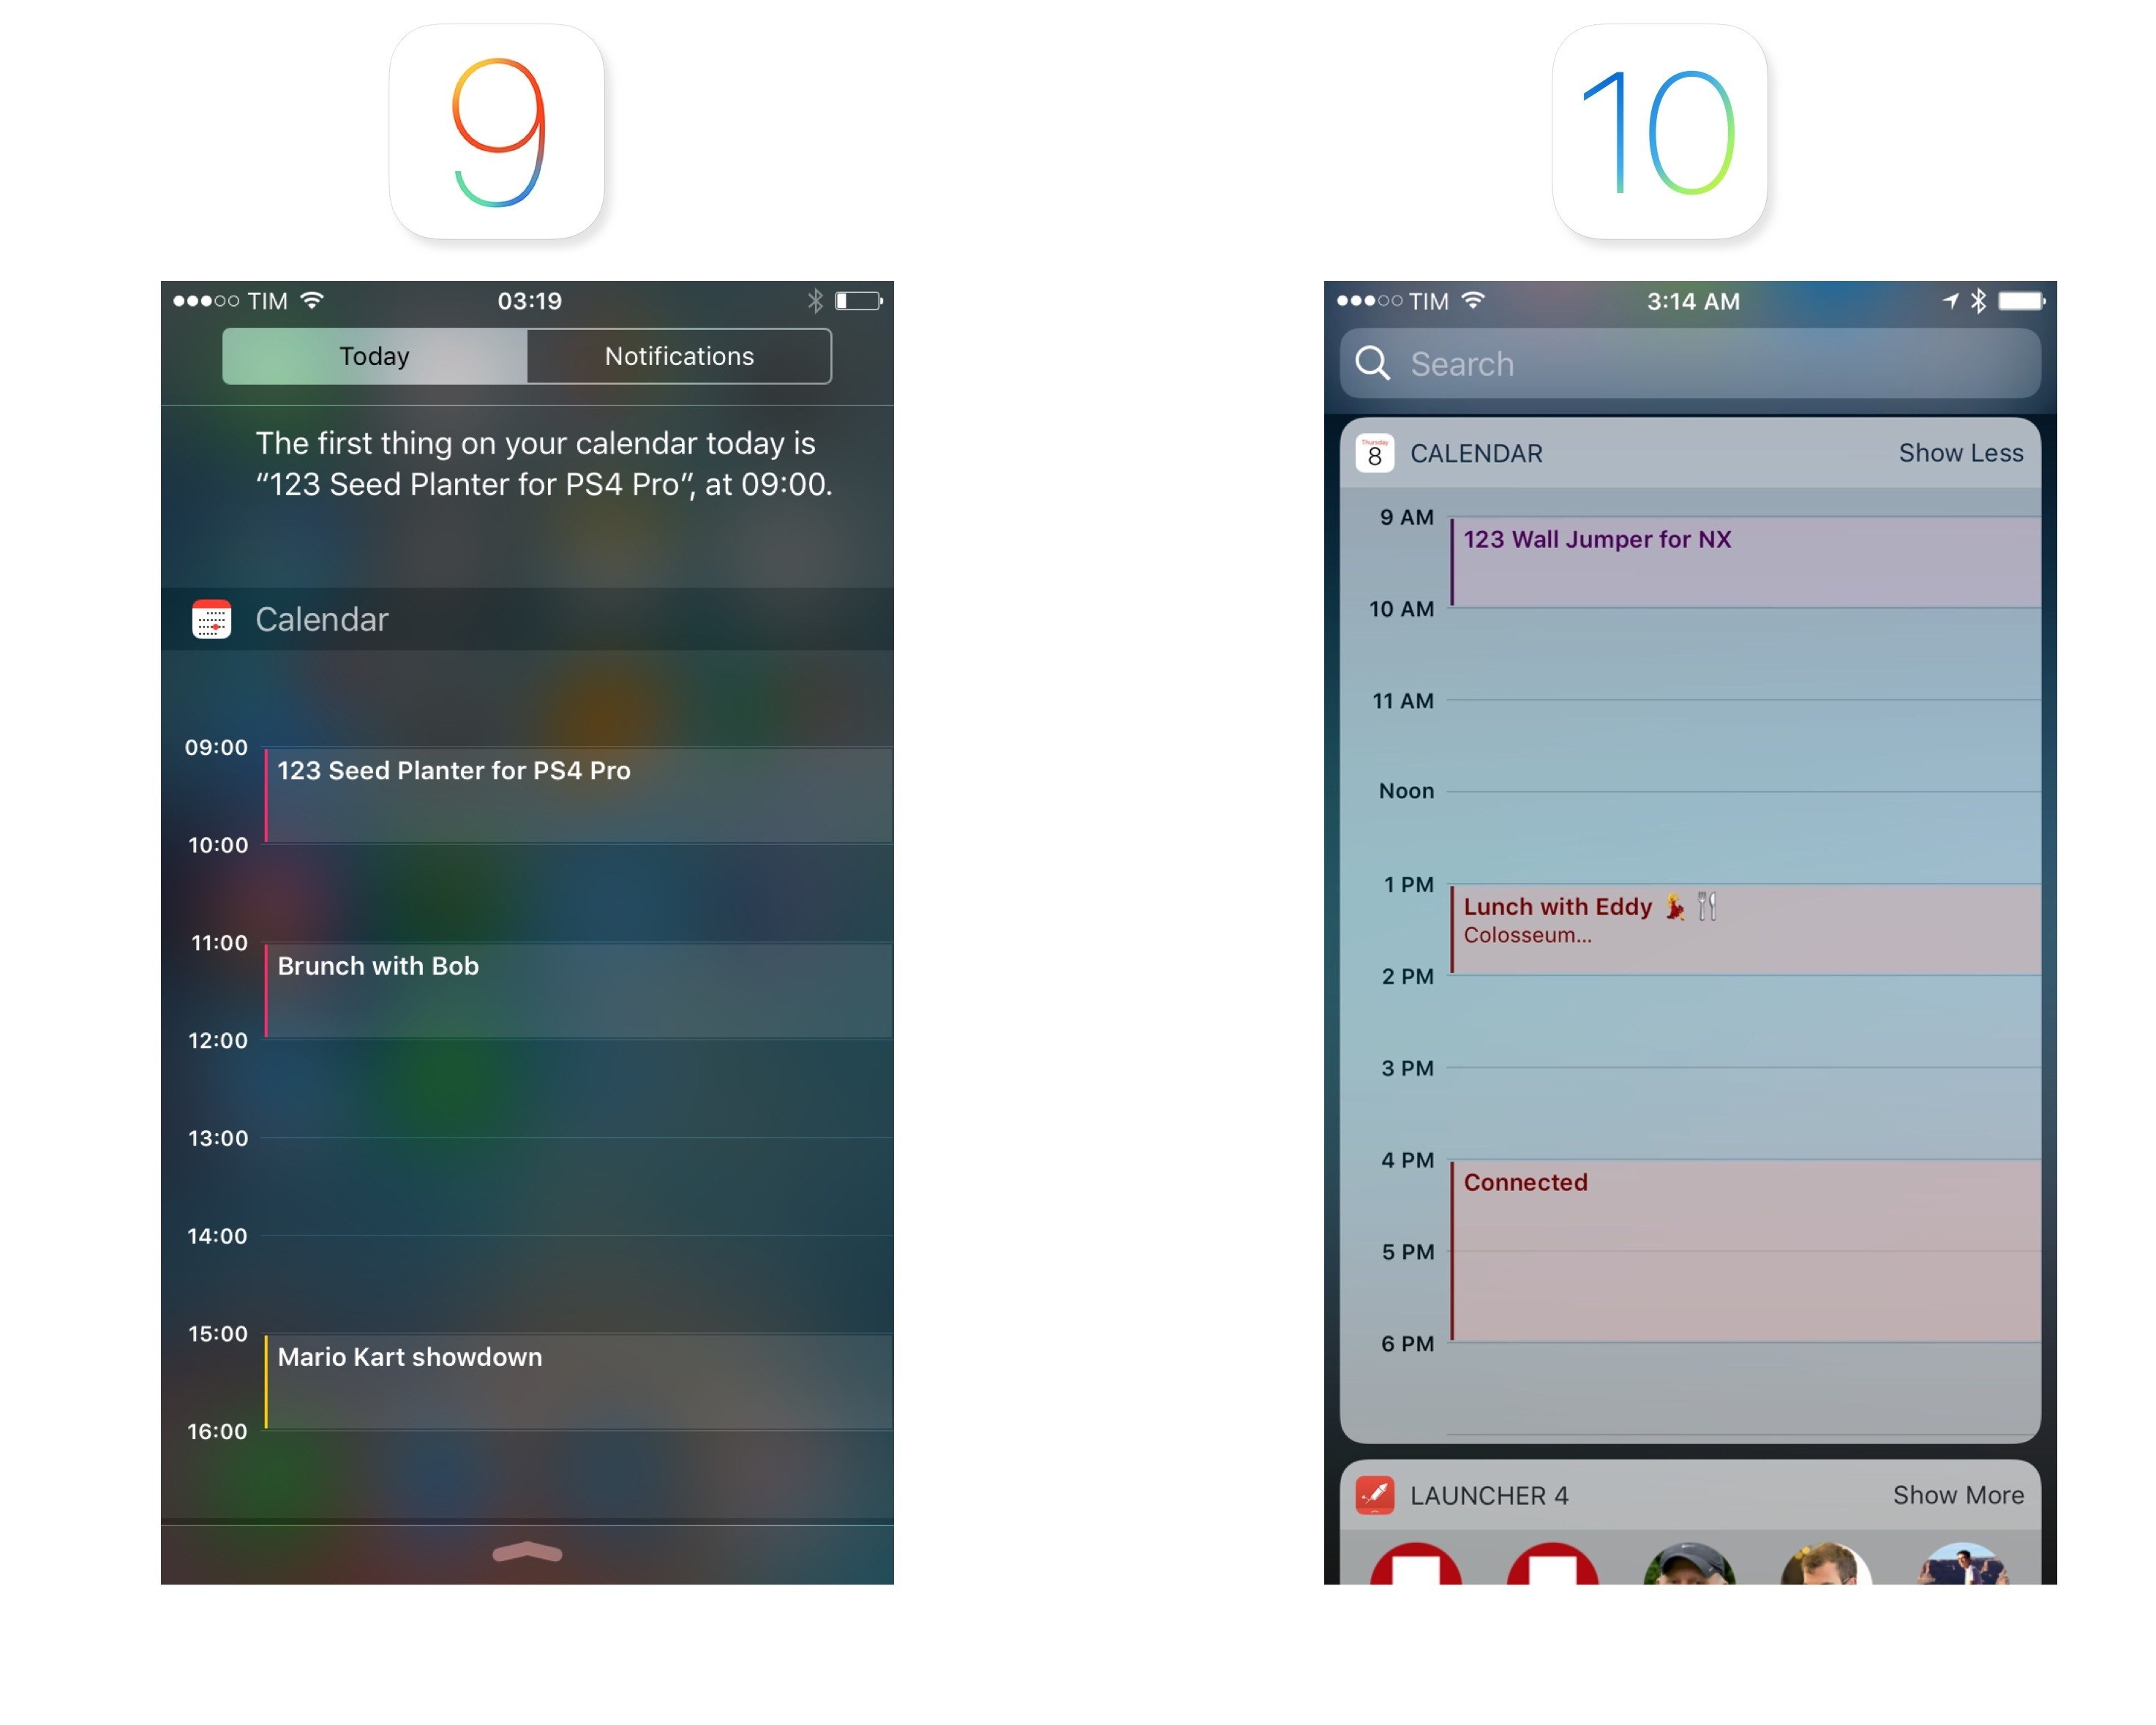 The Calendar widget is more contextual on iOS 10.